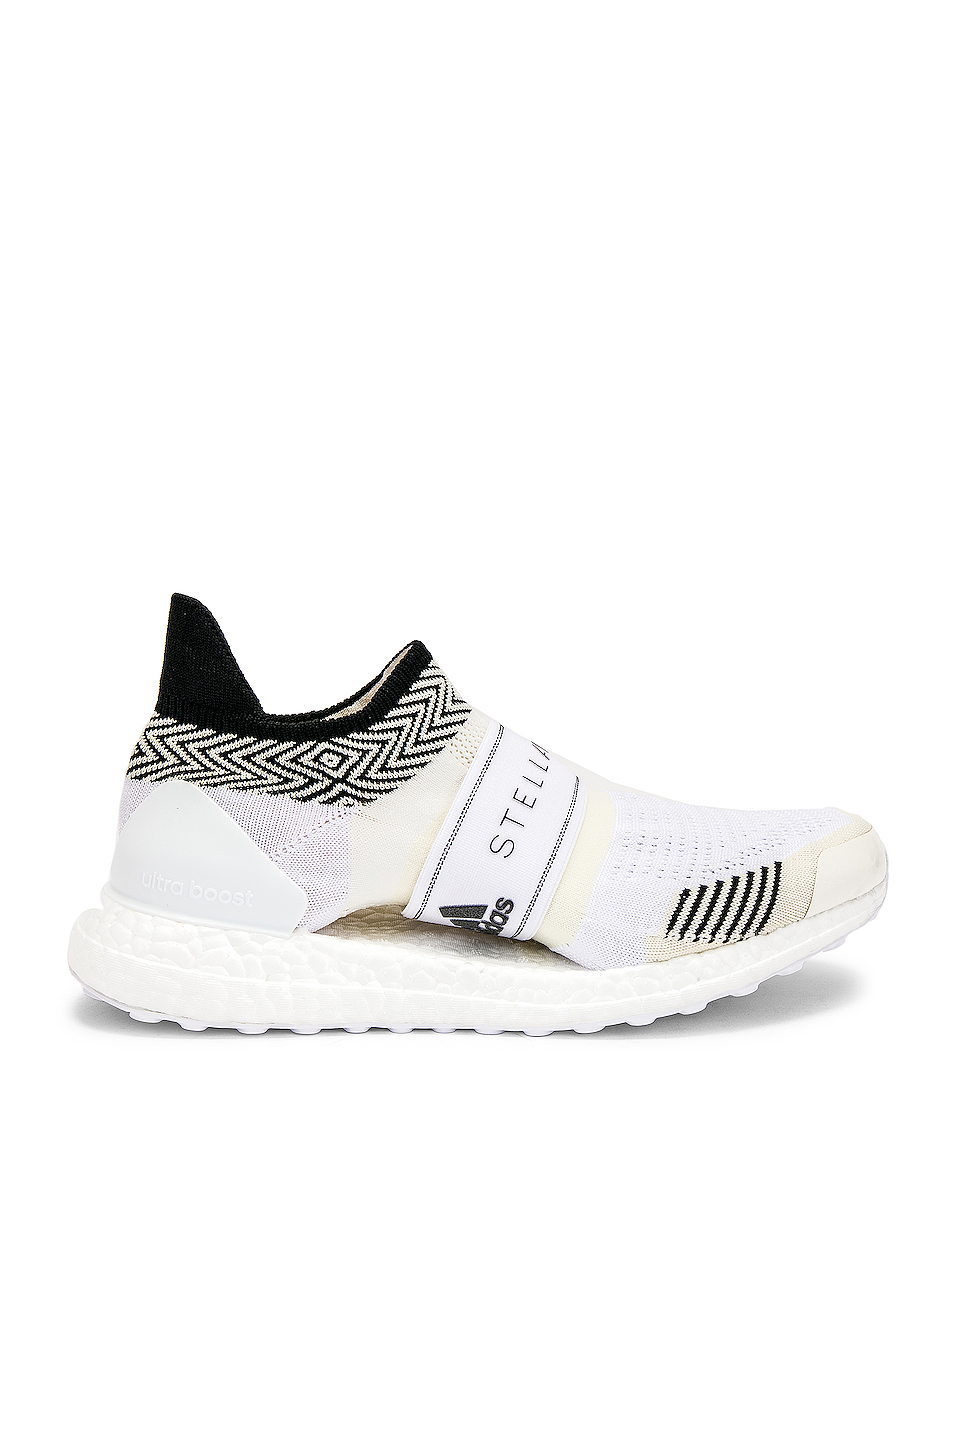 566609575 Buy Original adidas by Stella McCartney UltraBOOST X 3.D. at ...